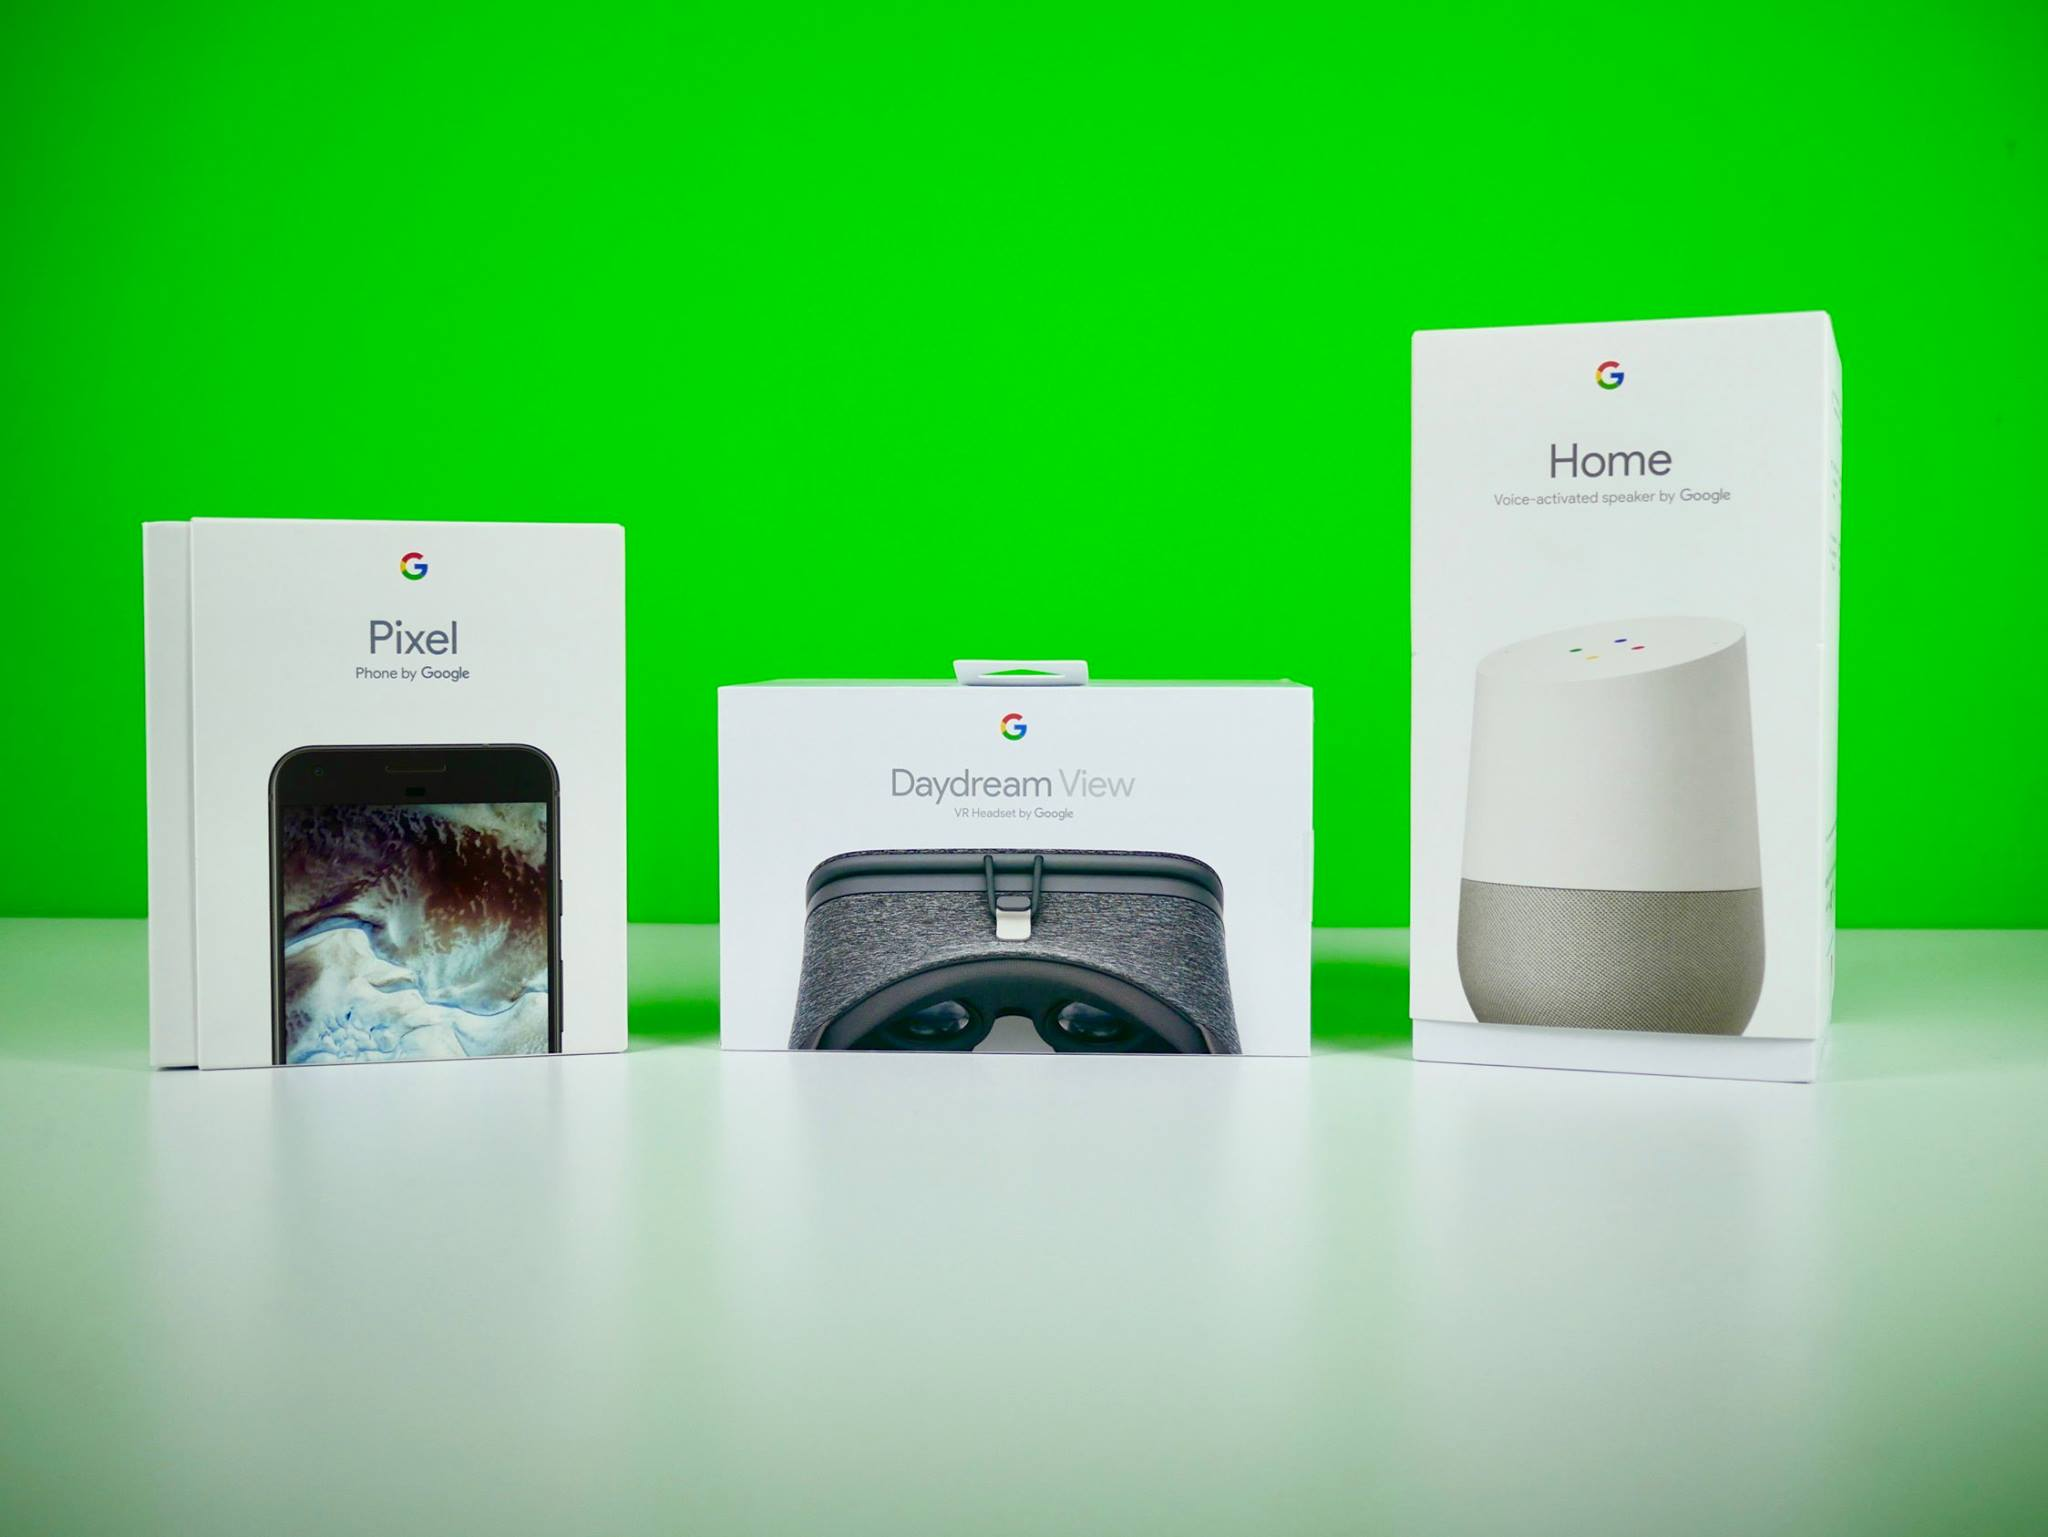 Google Home e DayDream View Unboxing Italiano